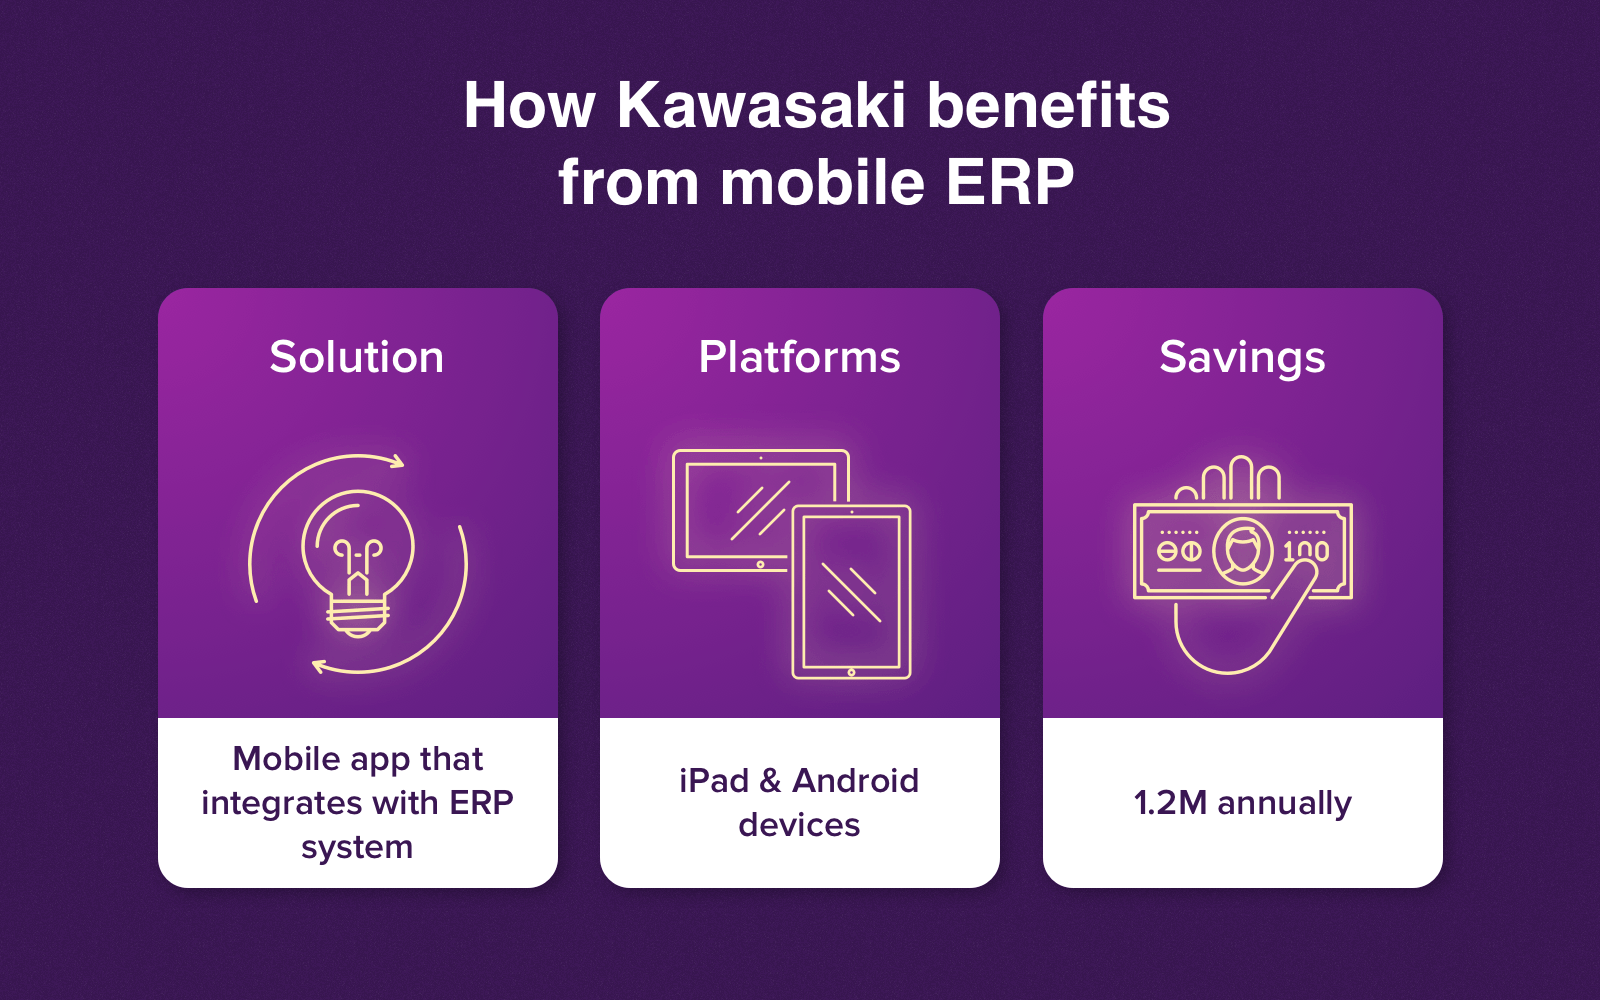 Results of Kawasaki's mobile ERP strategy